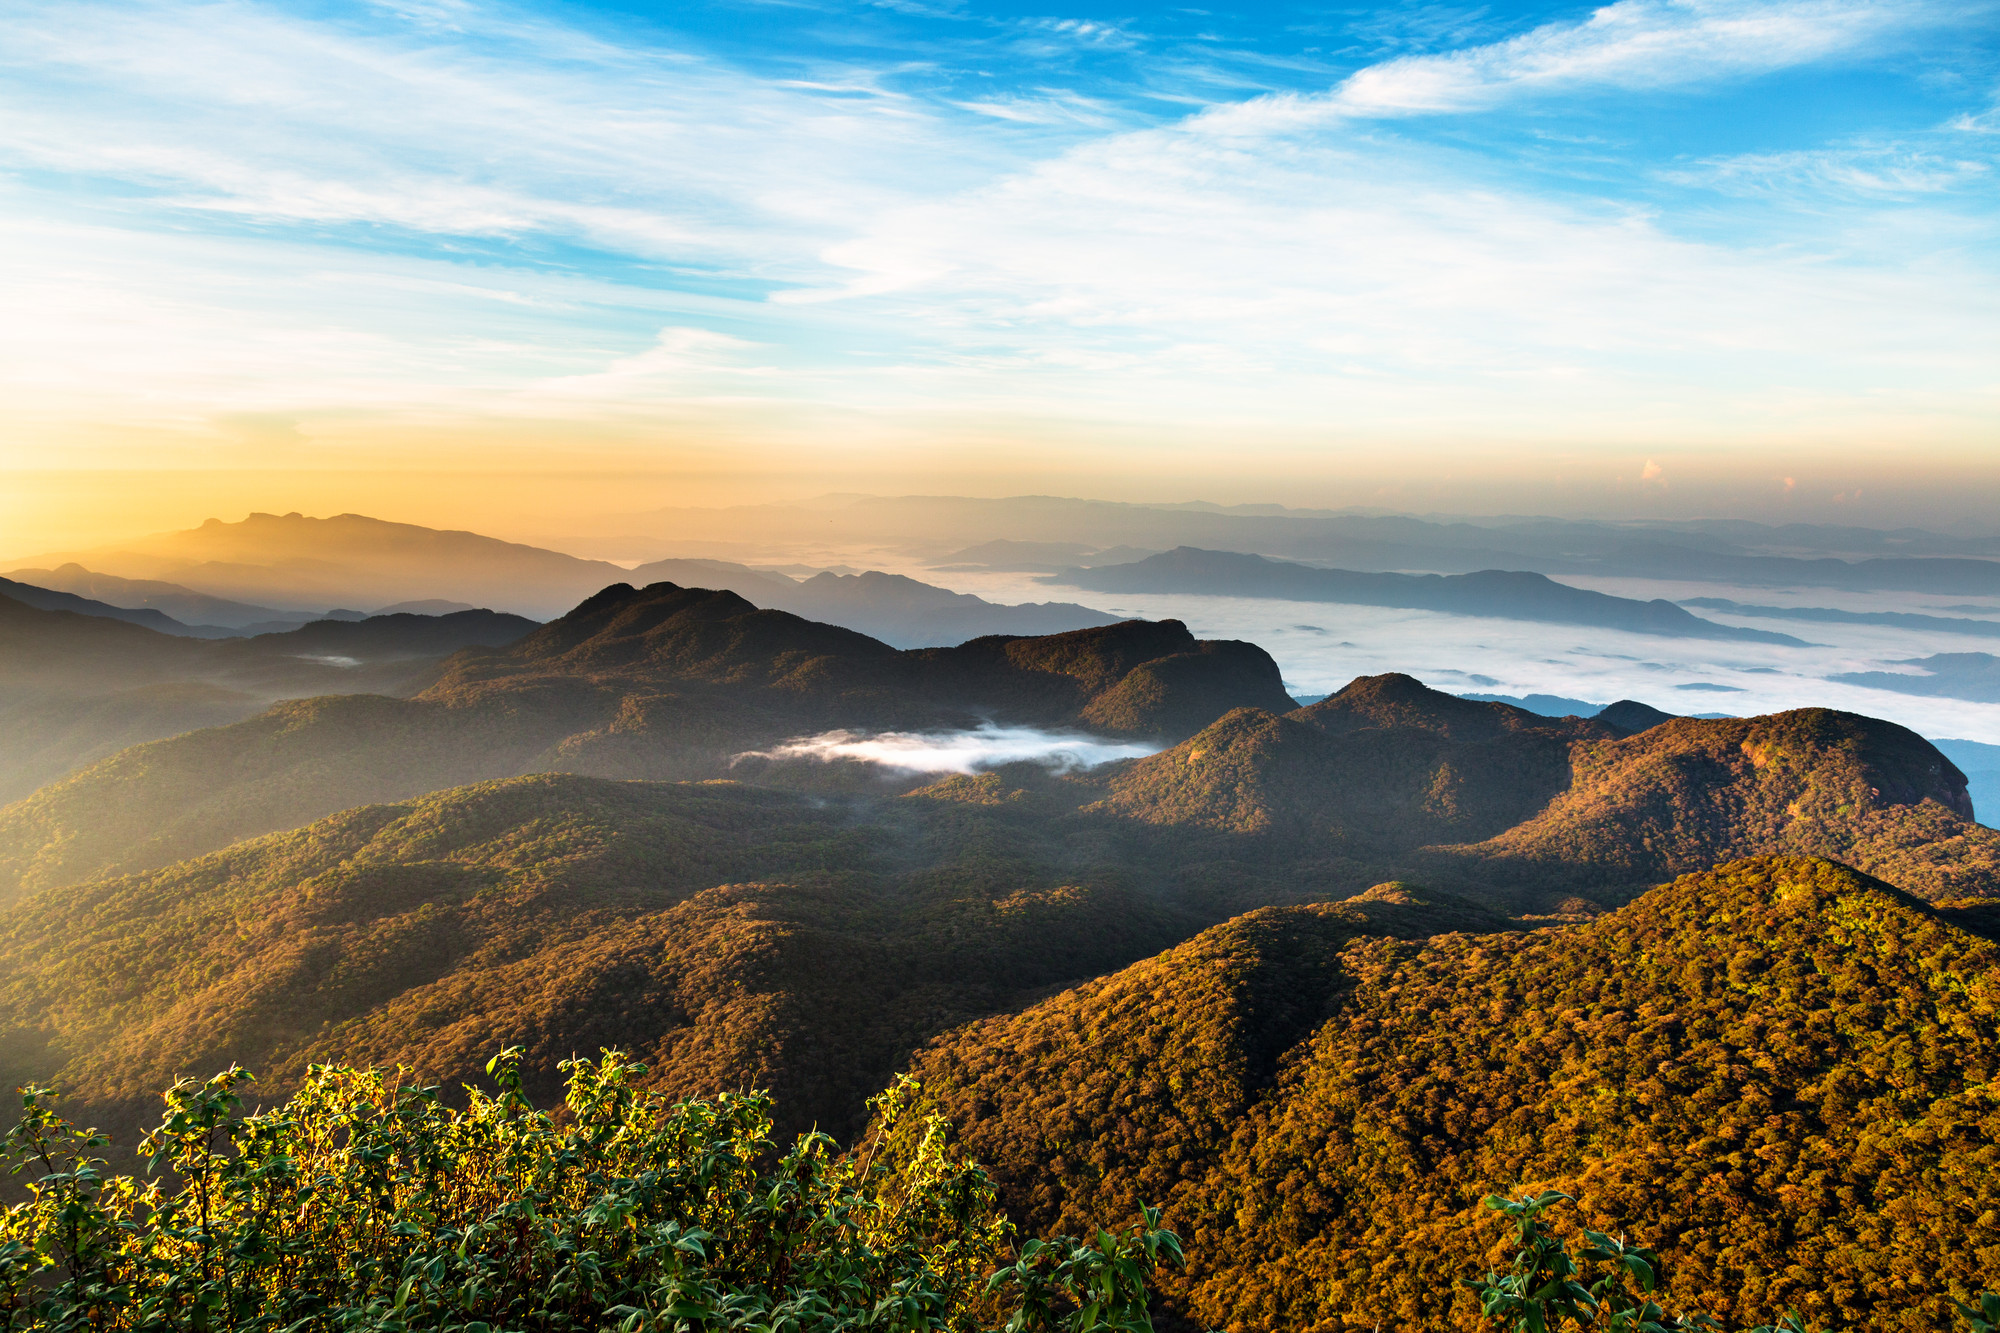 Sunrise over Adam's peak, Sri Lanka. 7 Reasons Why Holidaying in Sri Lanka Saves You Money - SpaDreams